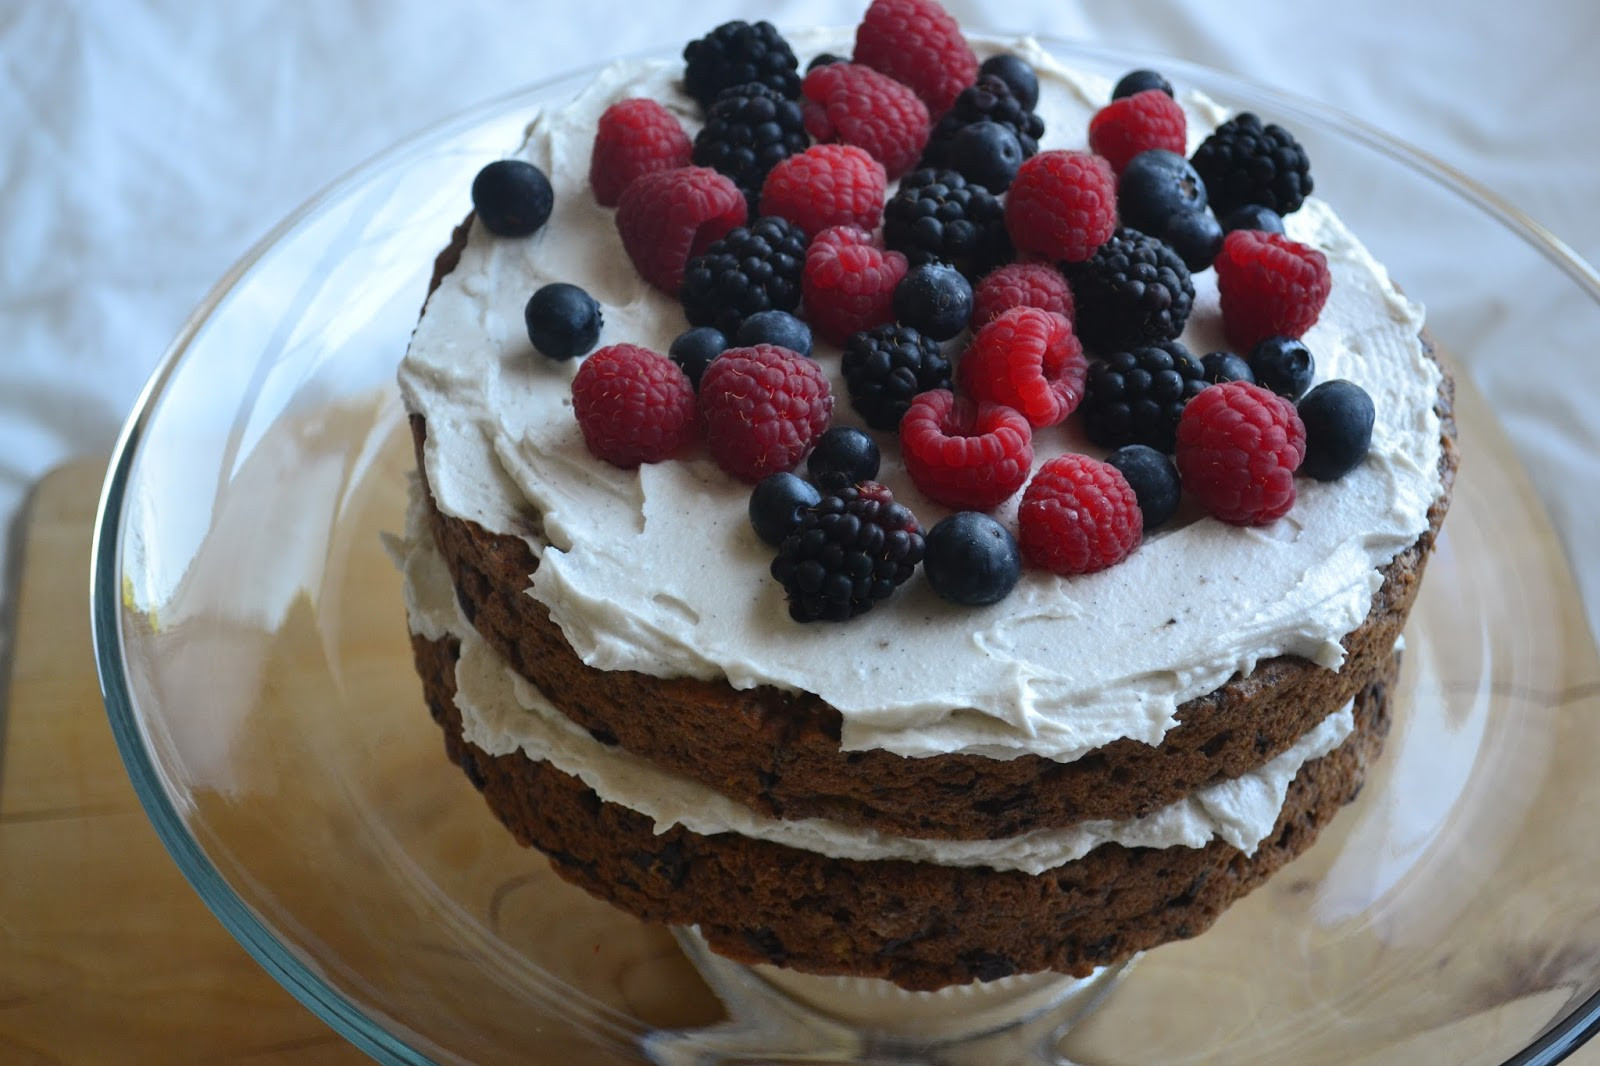 Healthy Birthday Cake For 1 Year Old  Nourish The Roots Healthy Birthday Cake for a Special e